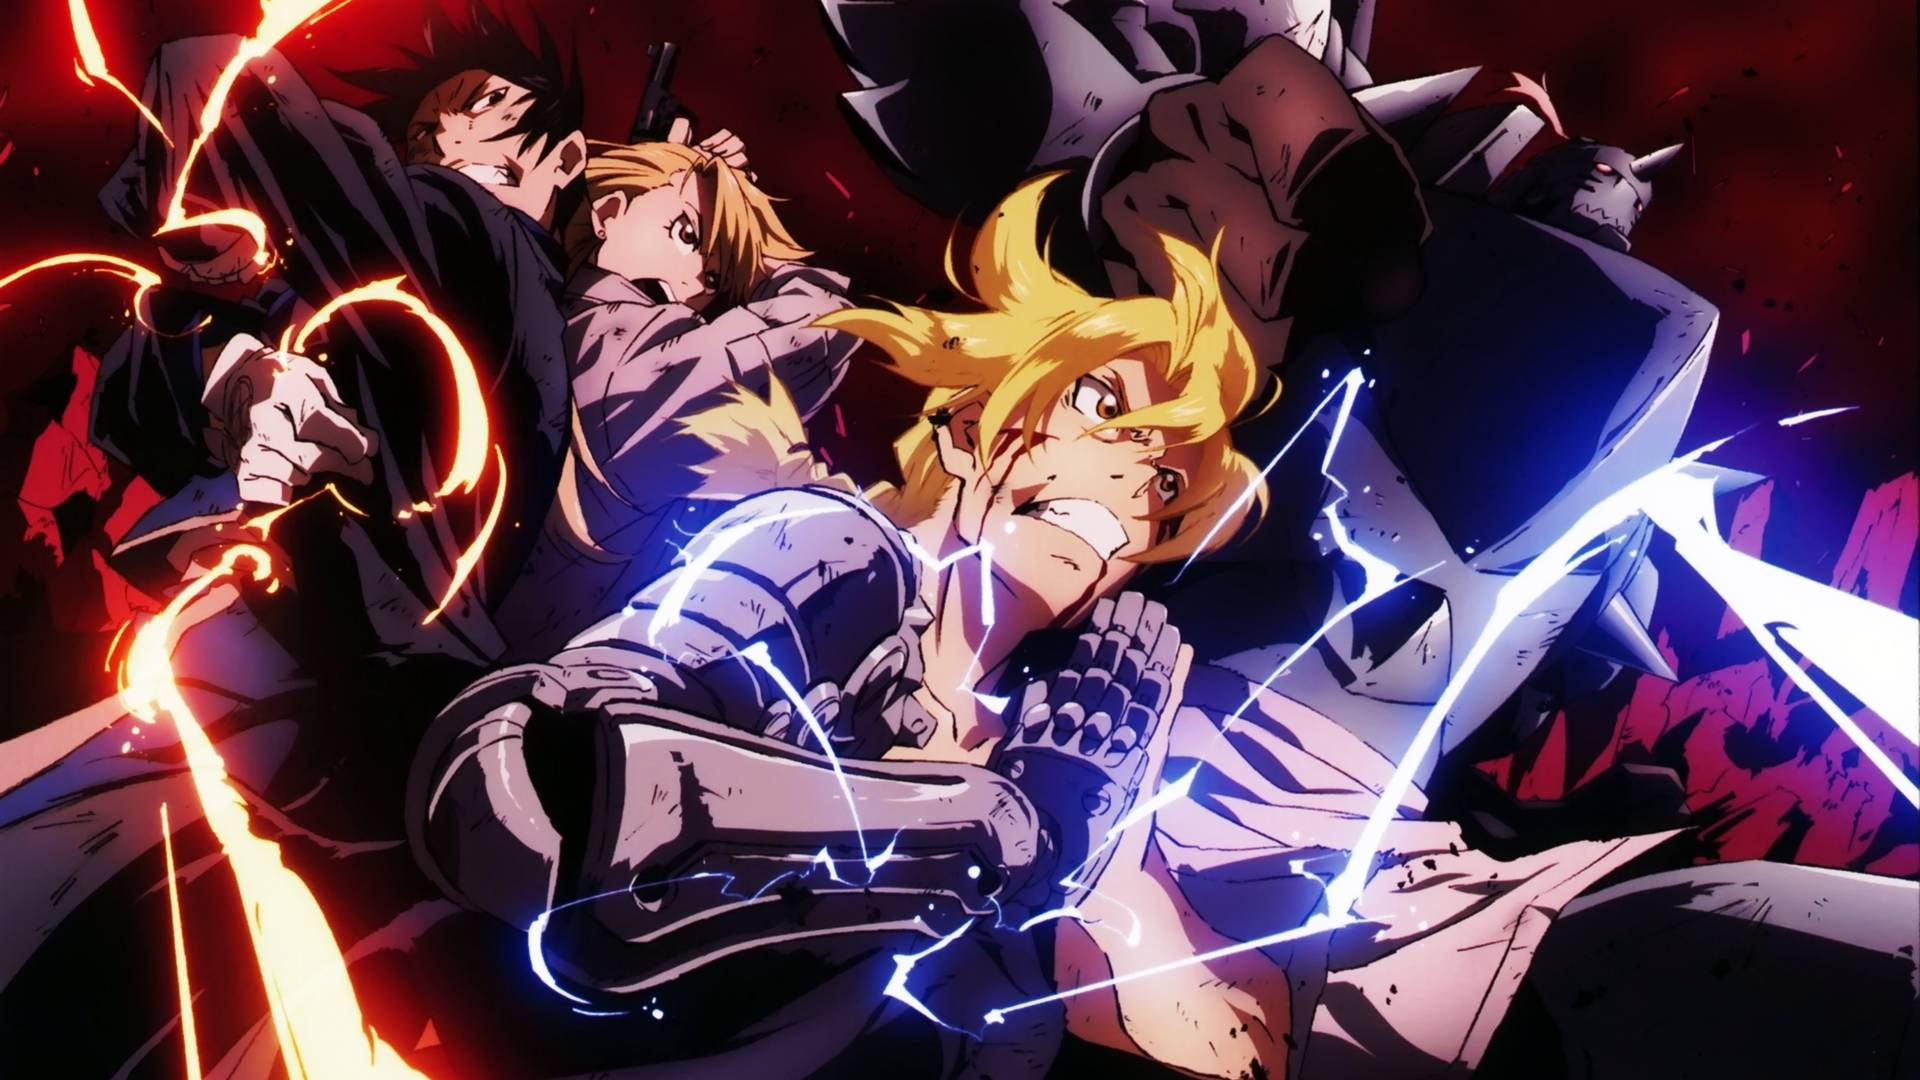 Fullmetal Alchemist HD Wallpapers - Wallpaper Cave